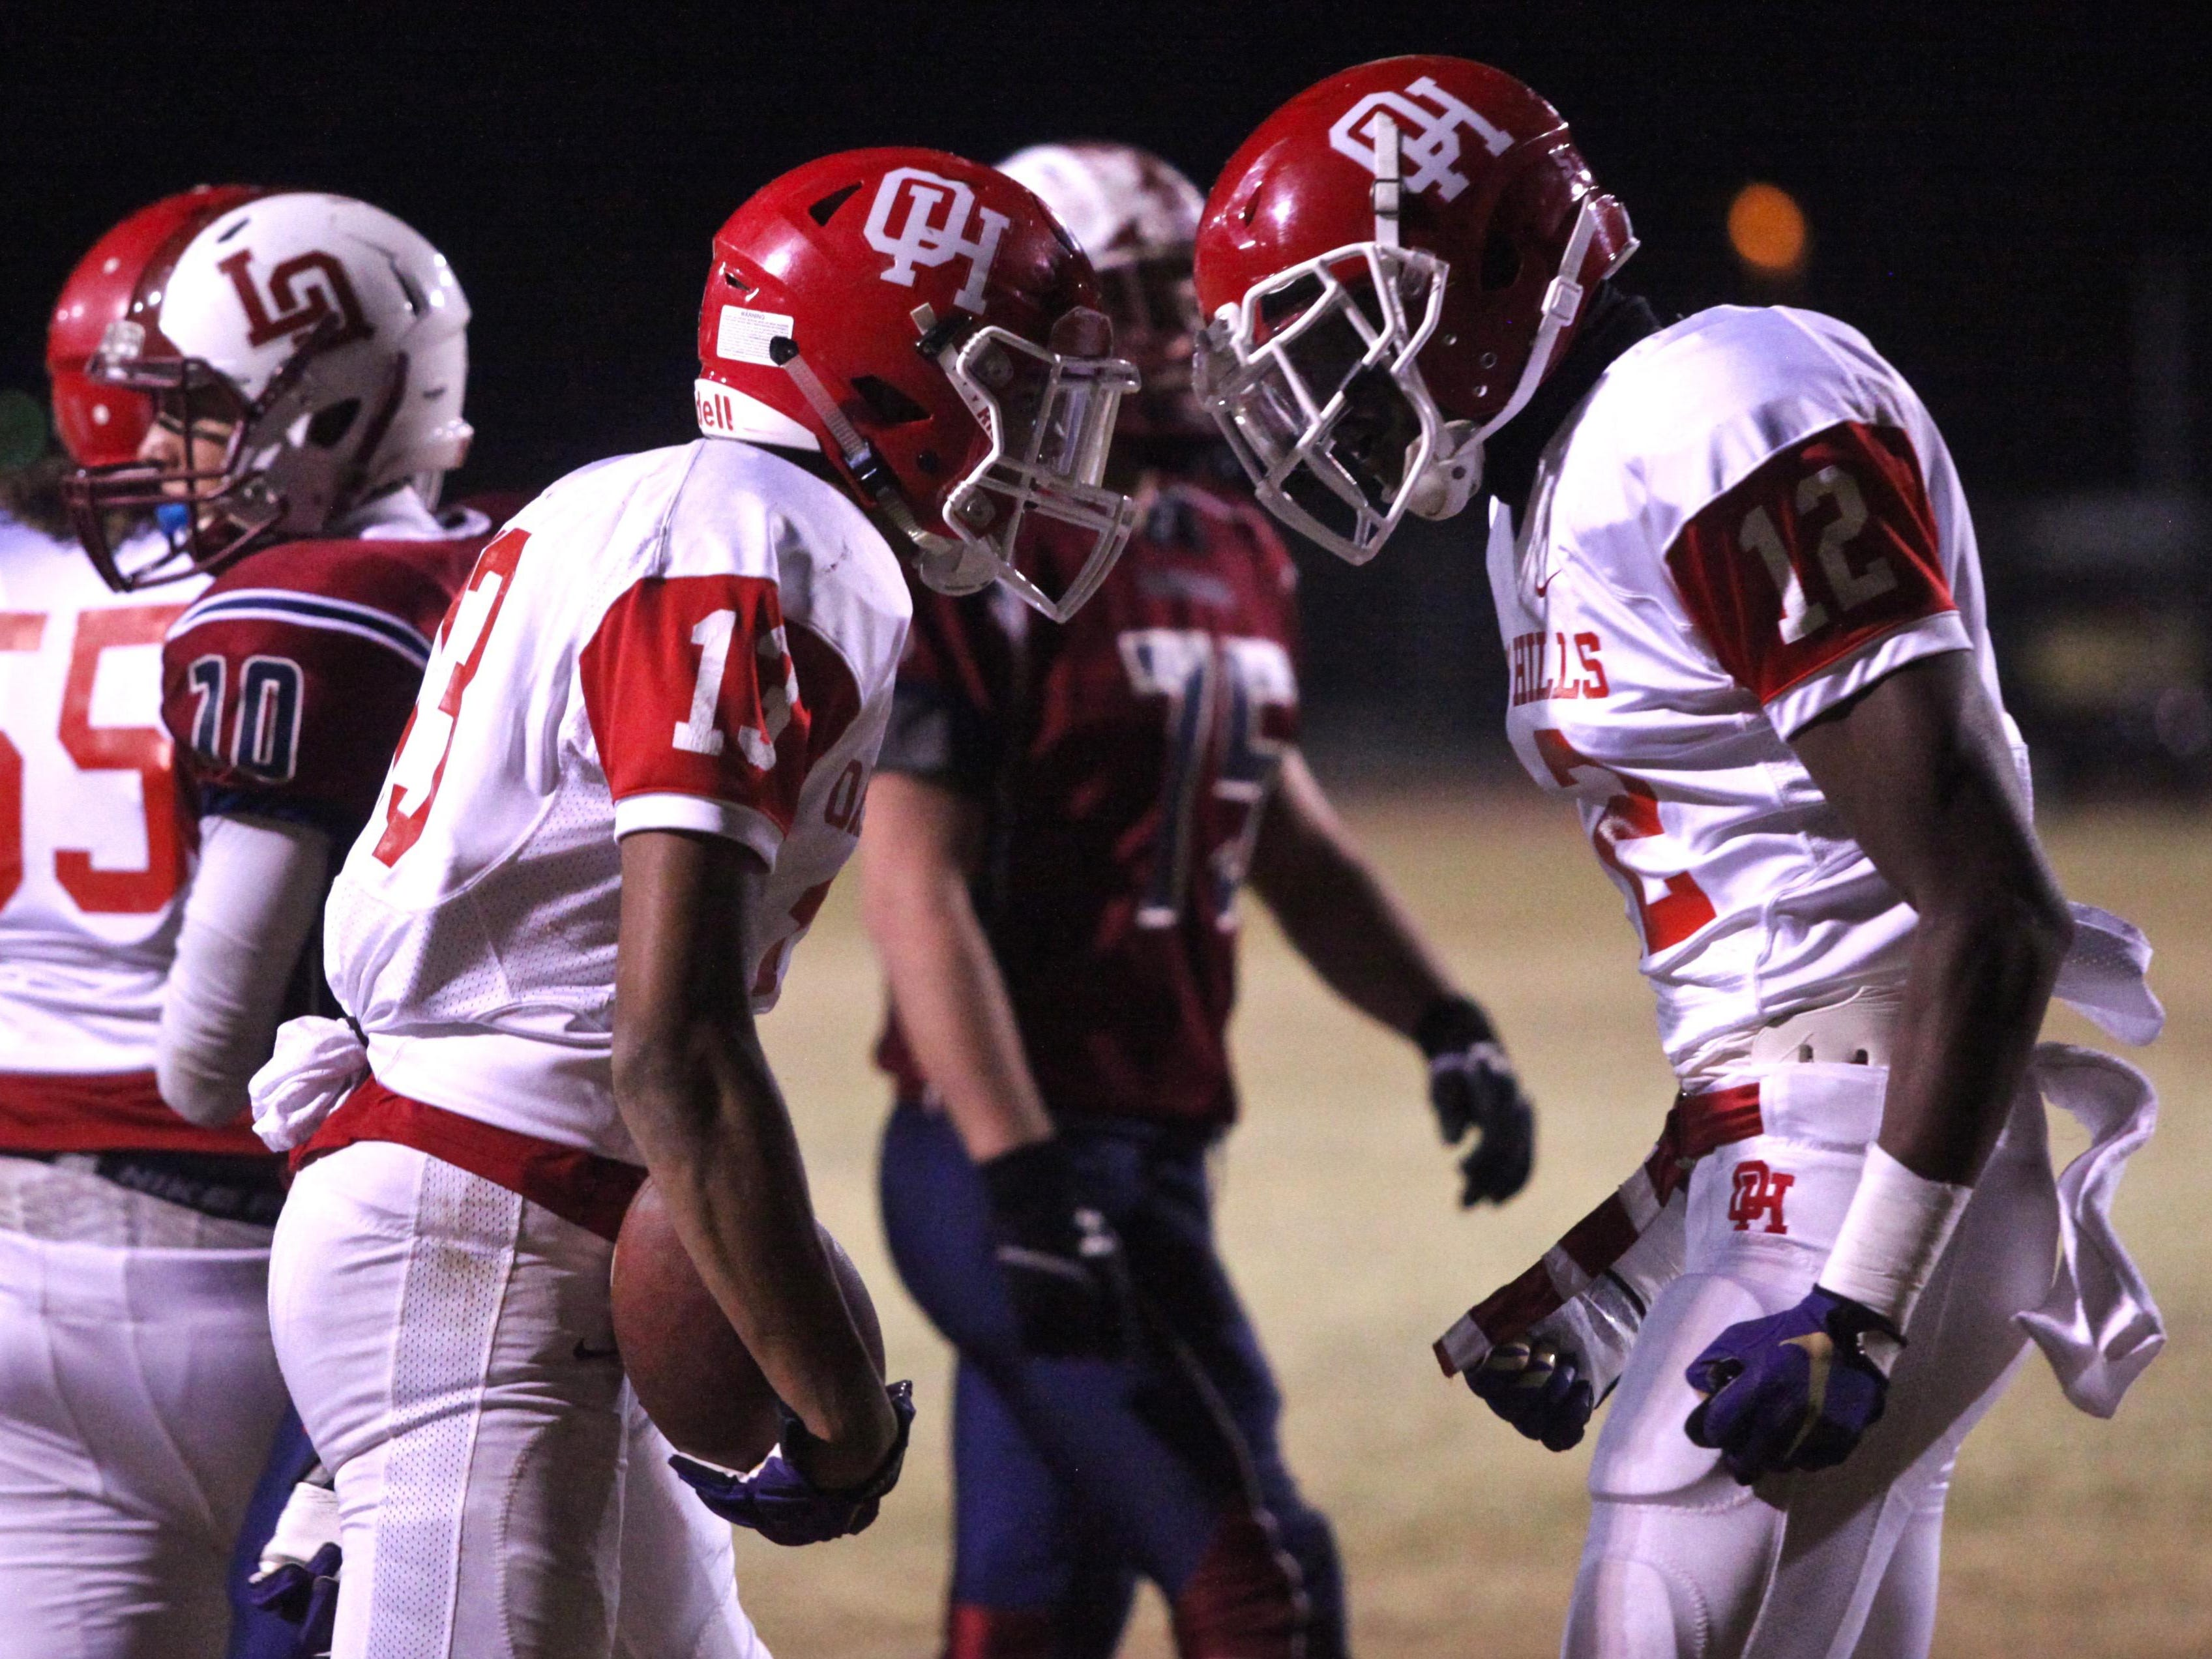 The Oak Hills Bulldogs celebrate a touchdown during the CIF semifinal with the La Quinta Blackhawks on Friday. The Bulldogs defeated the Blackhawks by a score of 33-21.